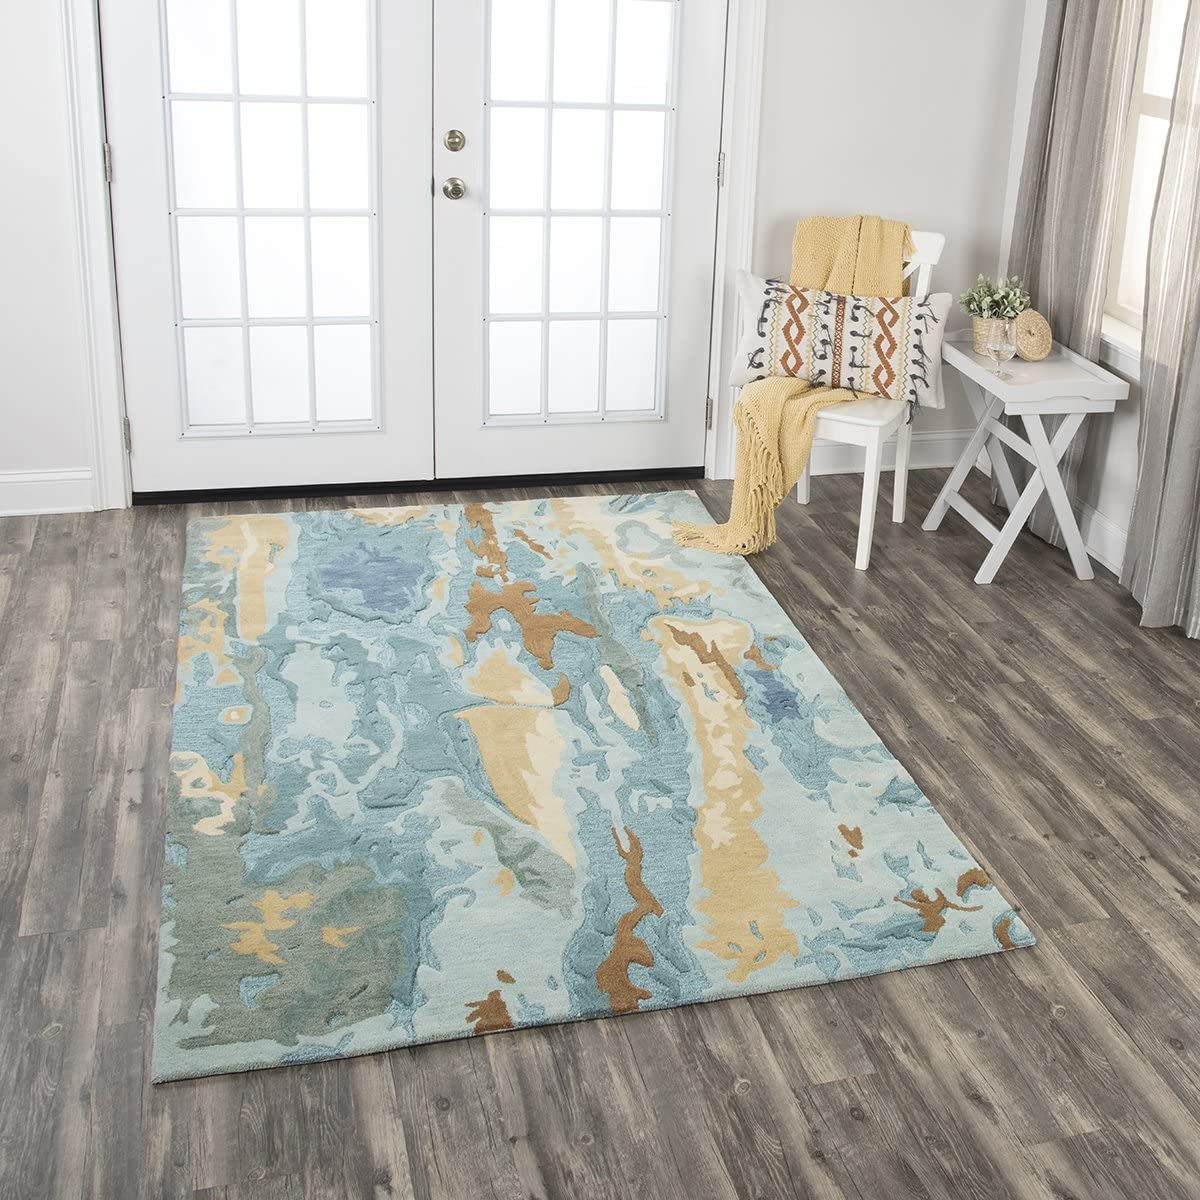 Rizzy Home Vogue Collection Wool Area Rug, 5' x 8', Blue/Grey/Teal/Gold